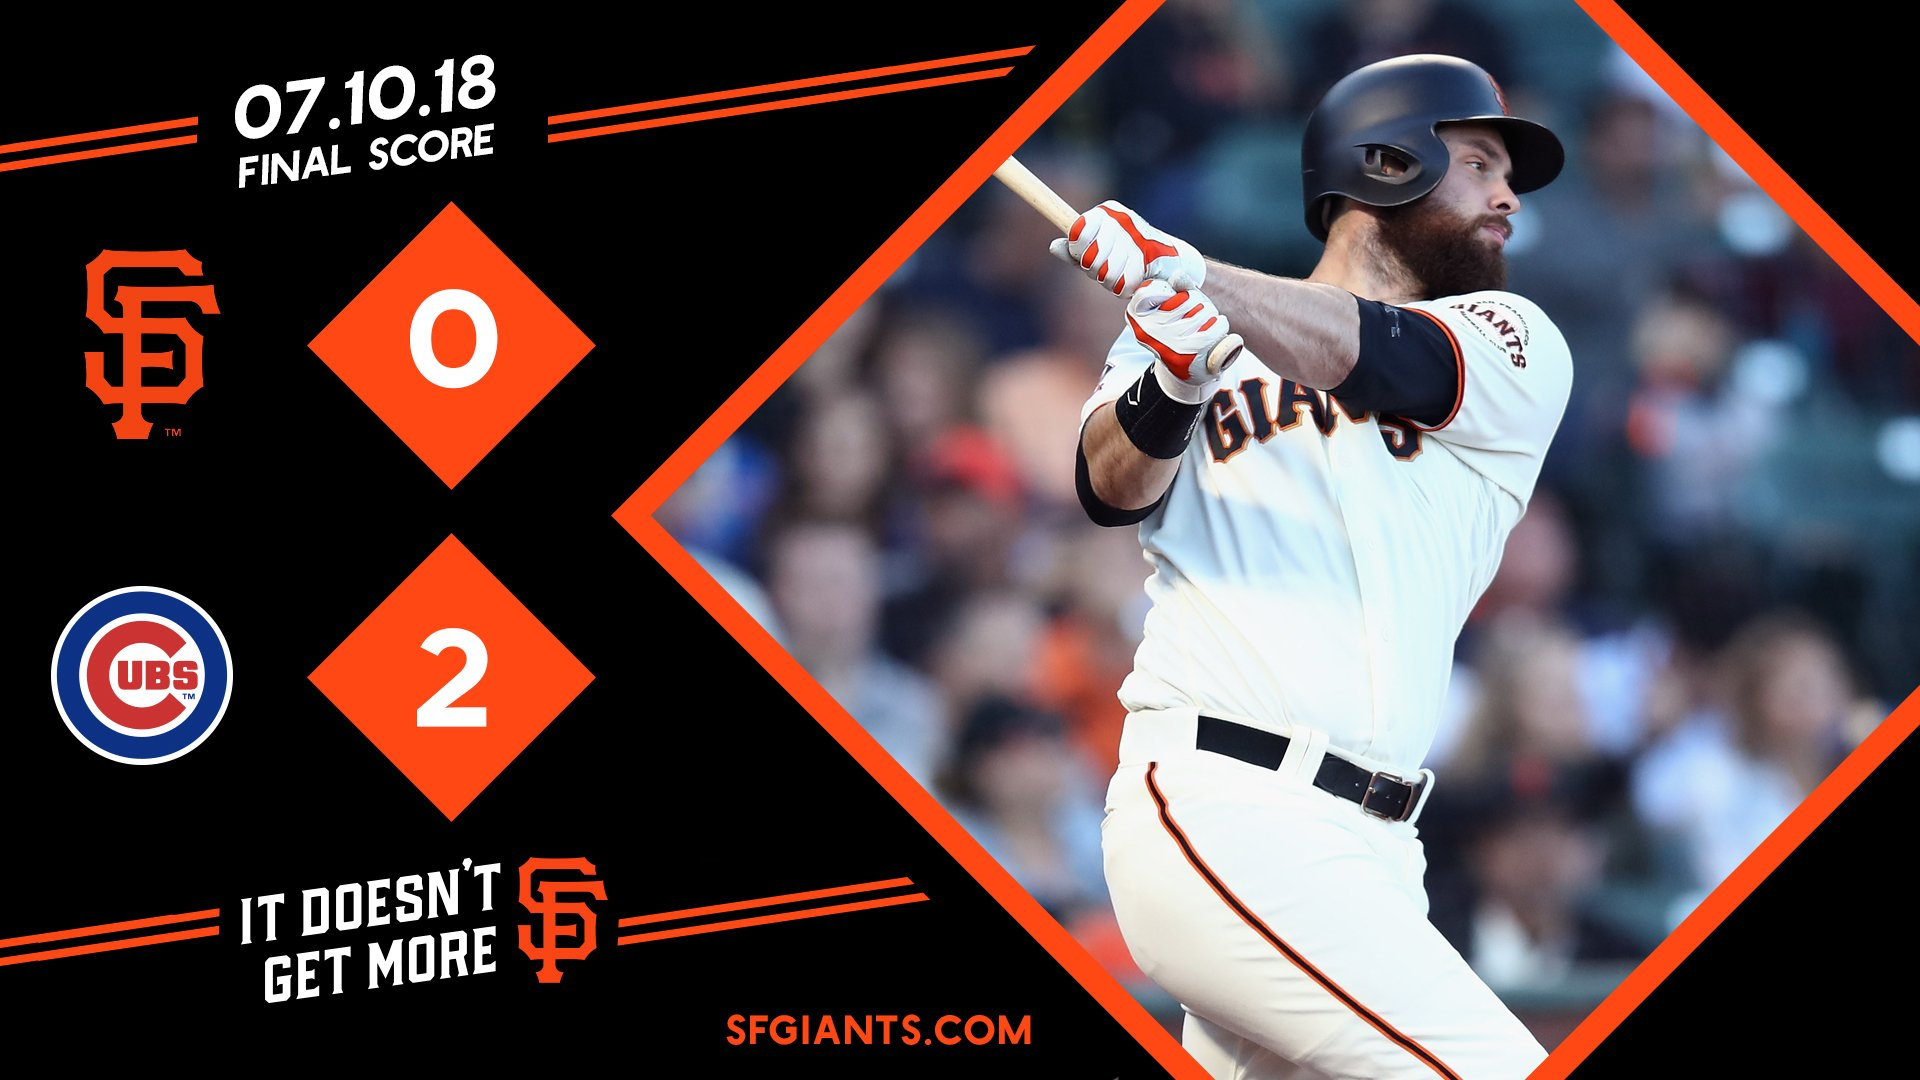 So much for that. We'll go for the series win tomorrow!   #SFGiants https://t.co/BCkhyTMNpw